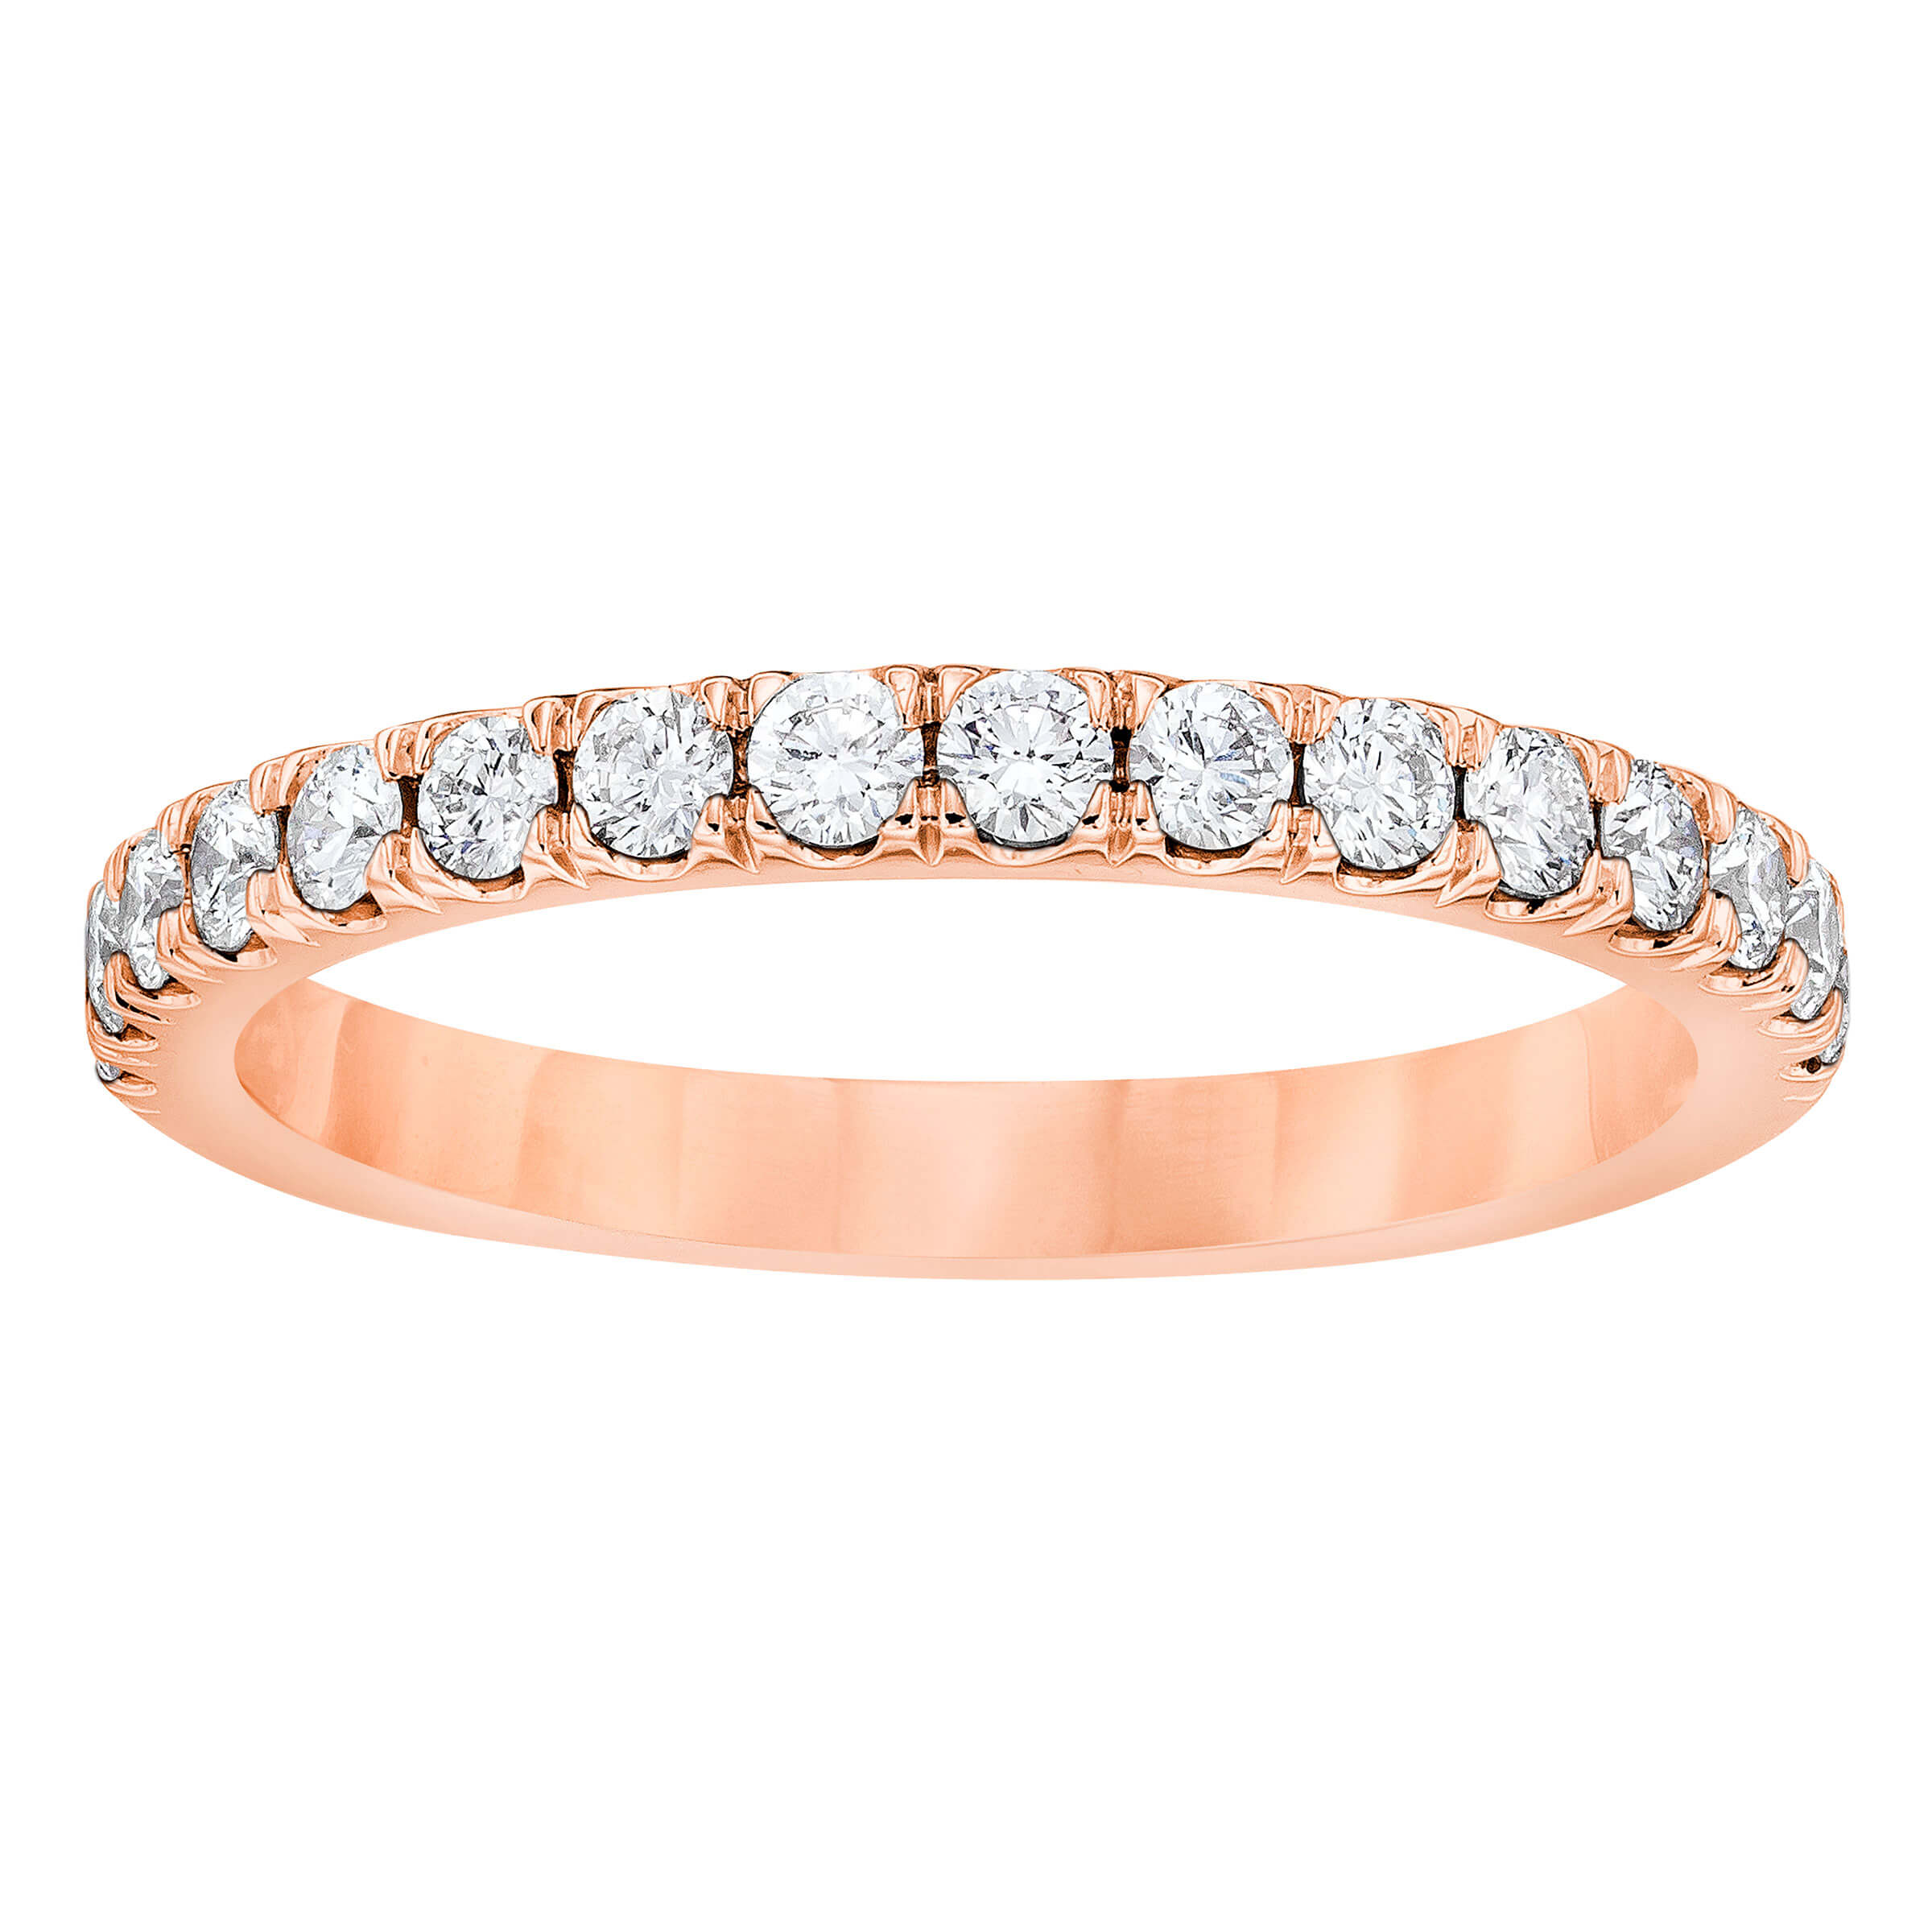 03005_Jewelry_Stock_Photography-Rose-Gold